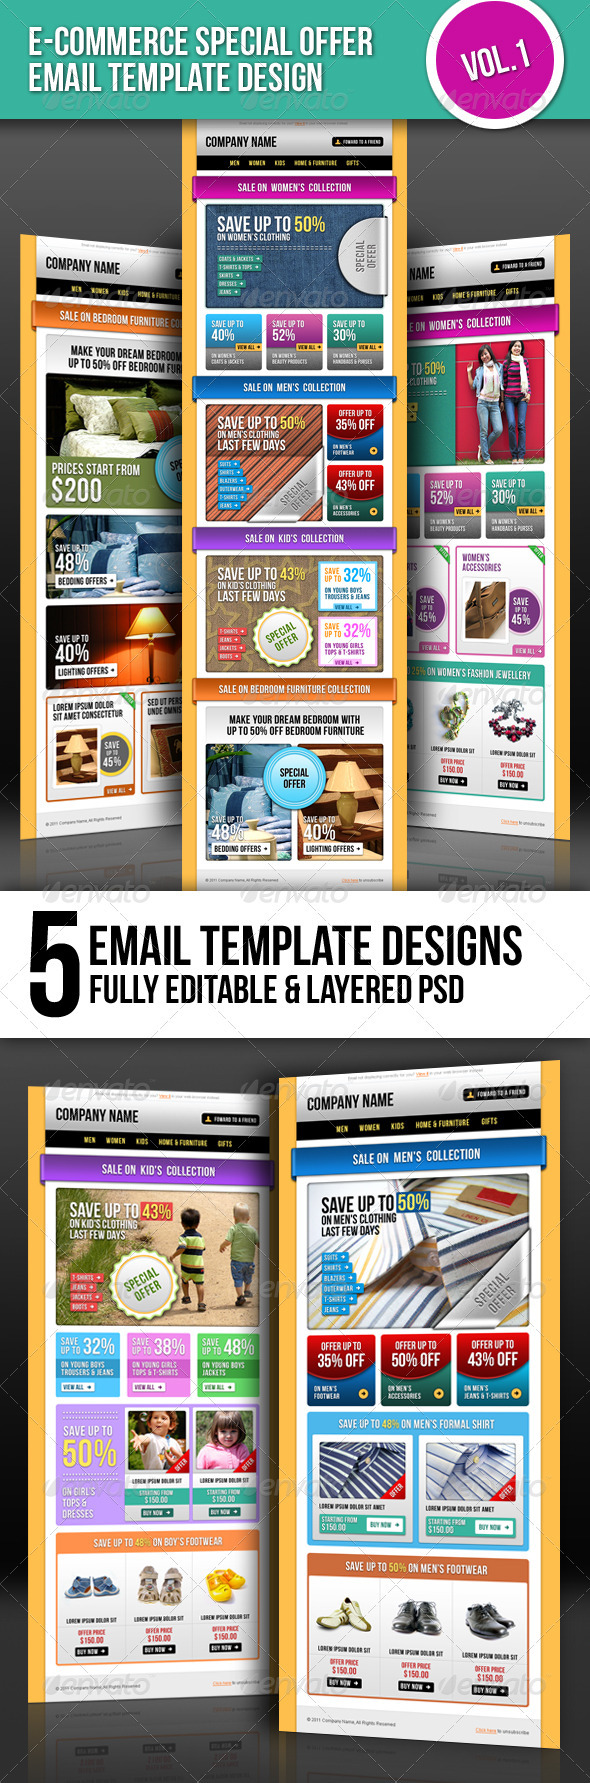 E-commerce Special Offer Email Template Vol.1 - E-newsletters Web Elements